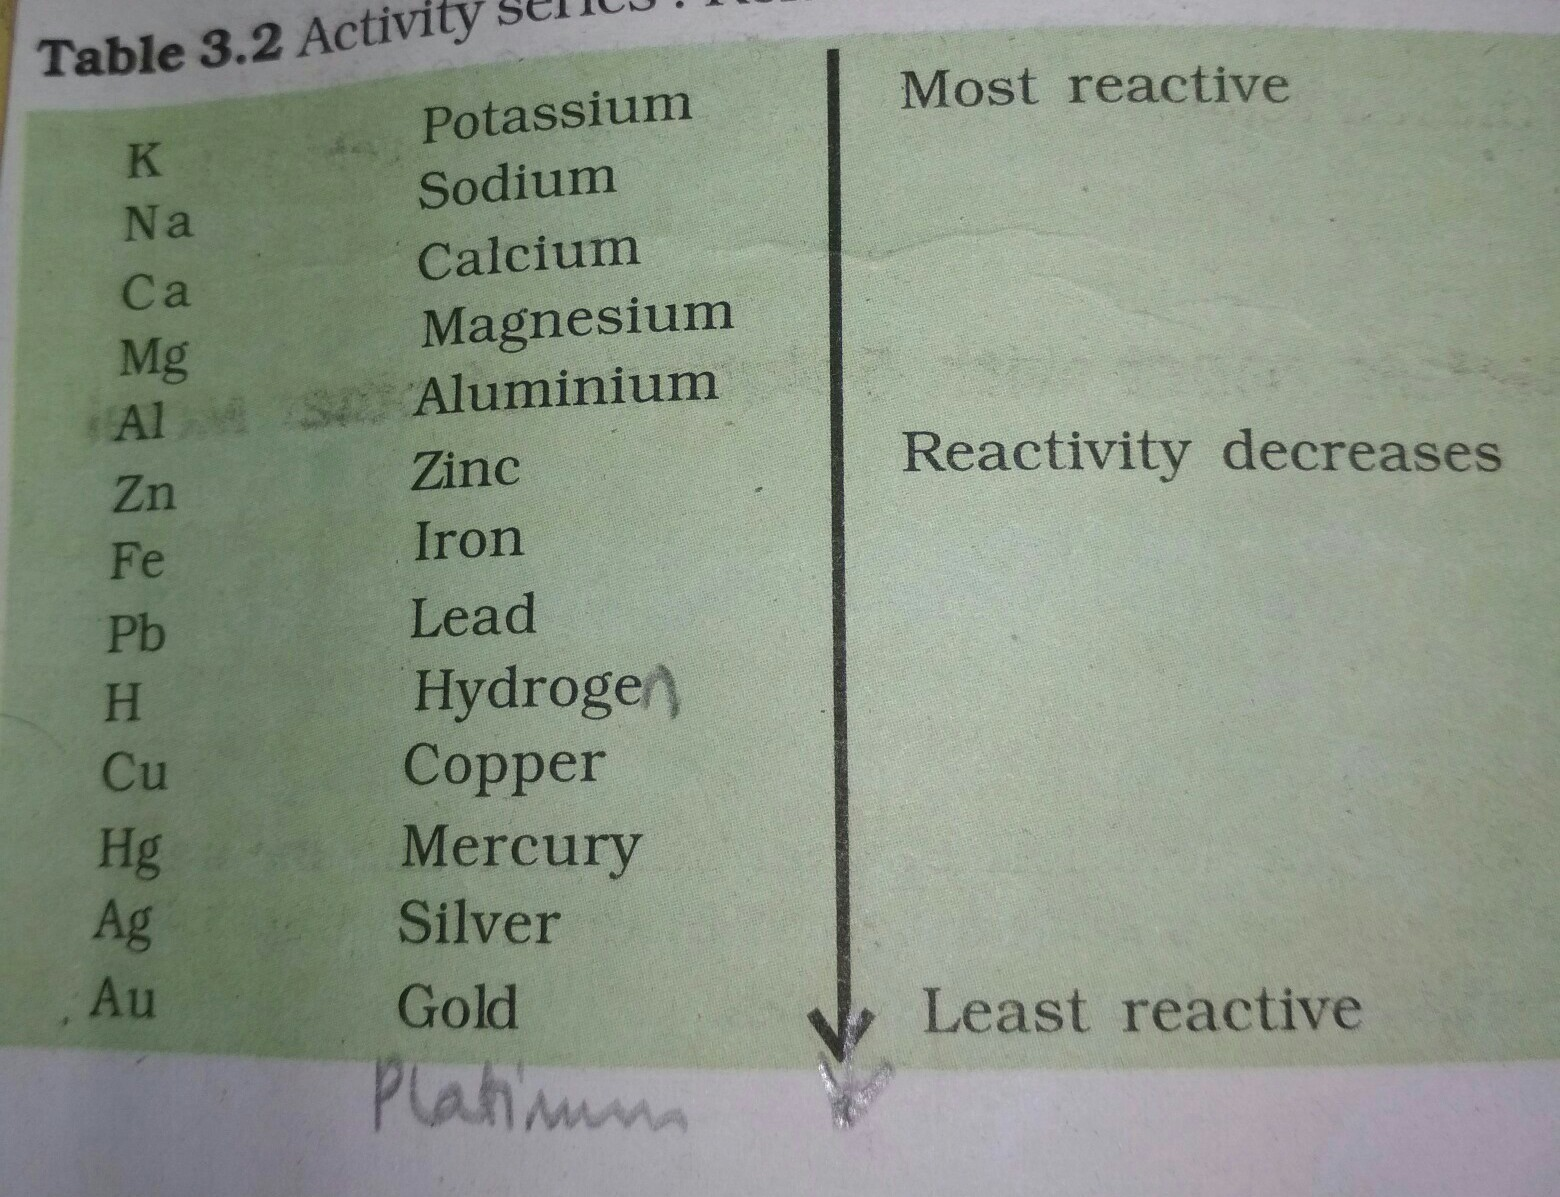 give me the list of reactivity series of chemicals in order